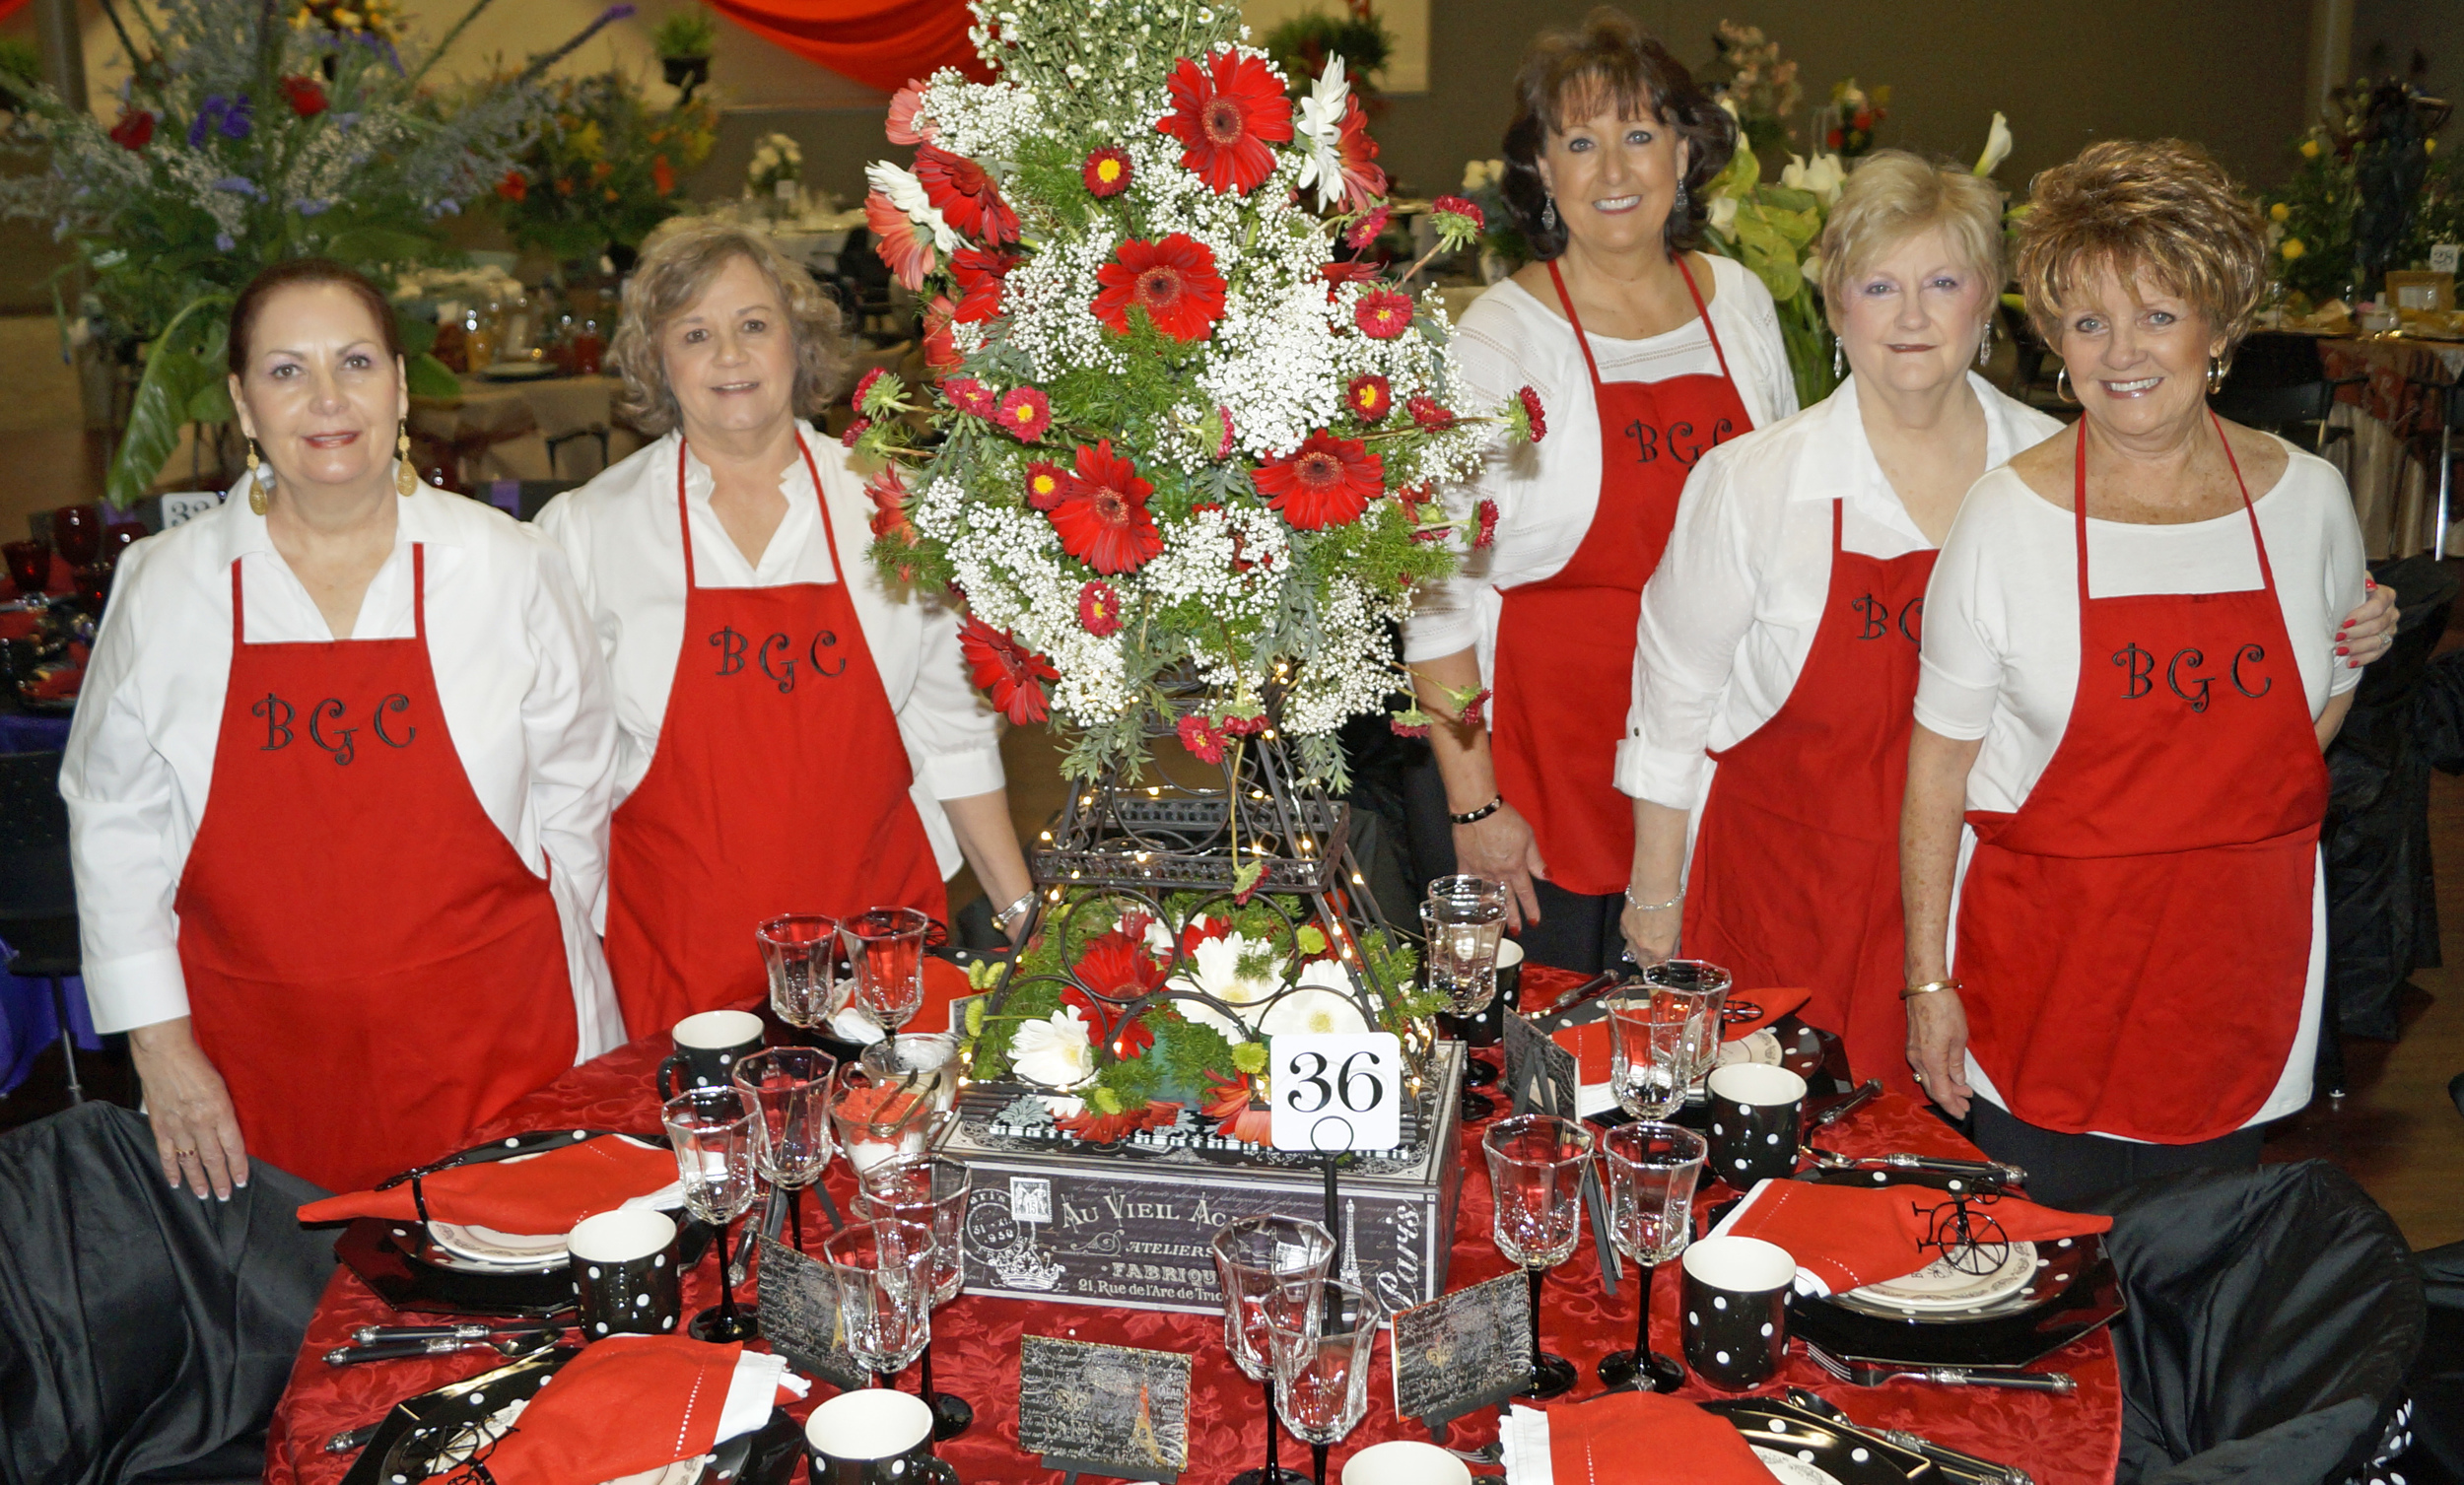 """Brandon Garden Club's eighth annual  Tablescapes  Luncheon fundraiser included 40 uniquely decorated  tables  , celebrity servers, and a fashion show featuring former BGC presidents as models. Pictured (l to r) at the """"Paris Flea Market""""  table  are club members Kathy Fletcher, Martha Powell, Marie Lodes, Sharon Hoffman, and Marion McKee."""